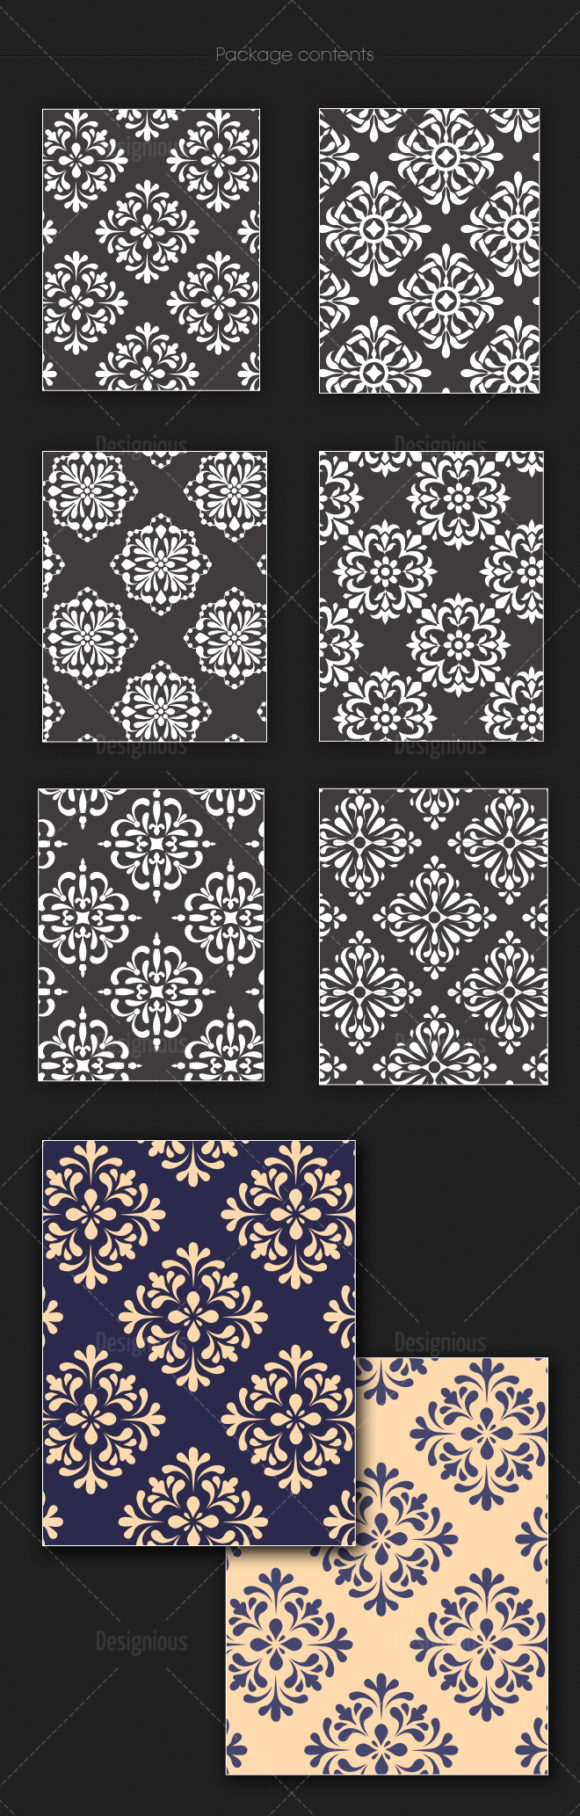 Seamless Patterns Vector Pack 137 products seamless patterns vector pack 137 large